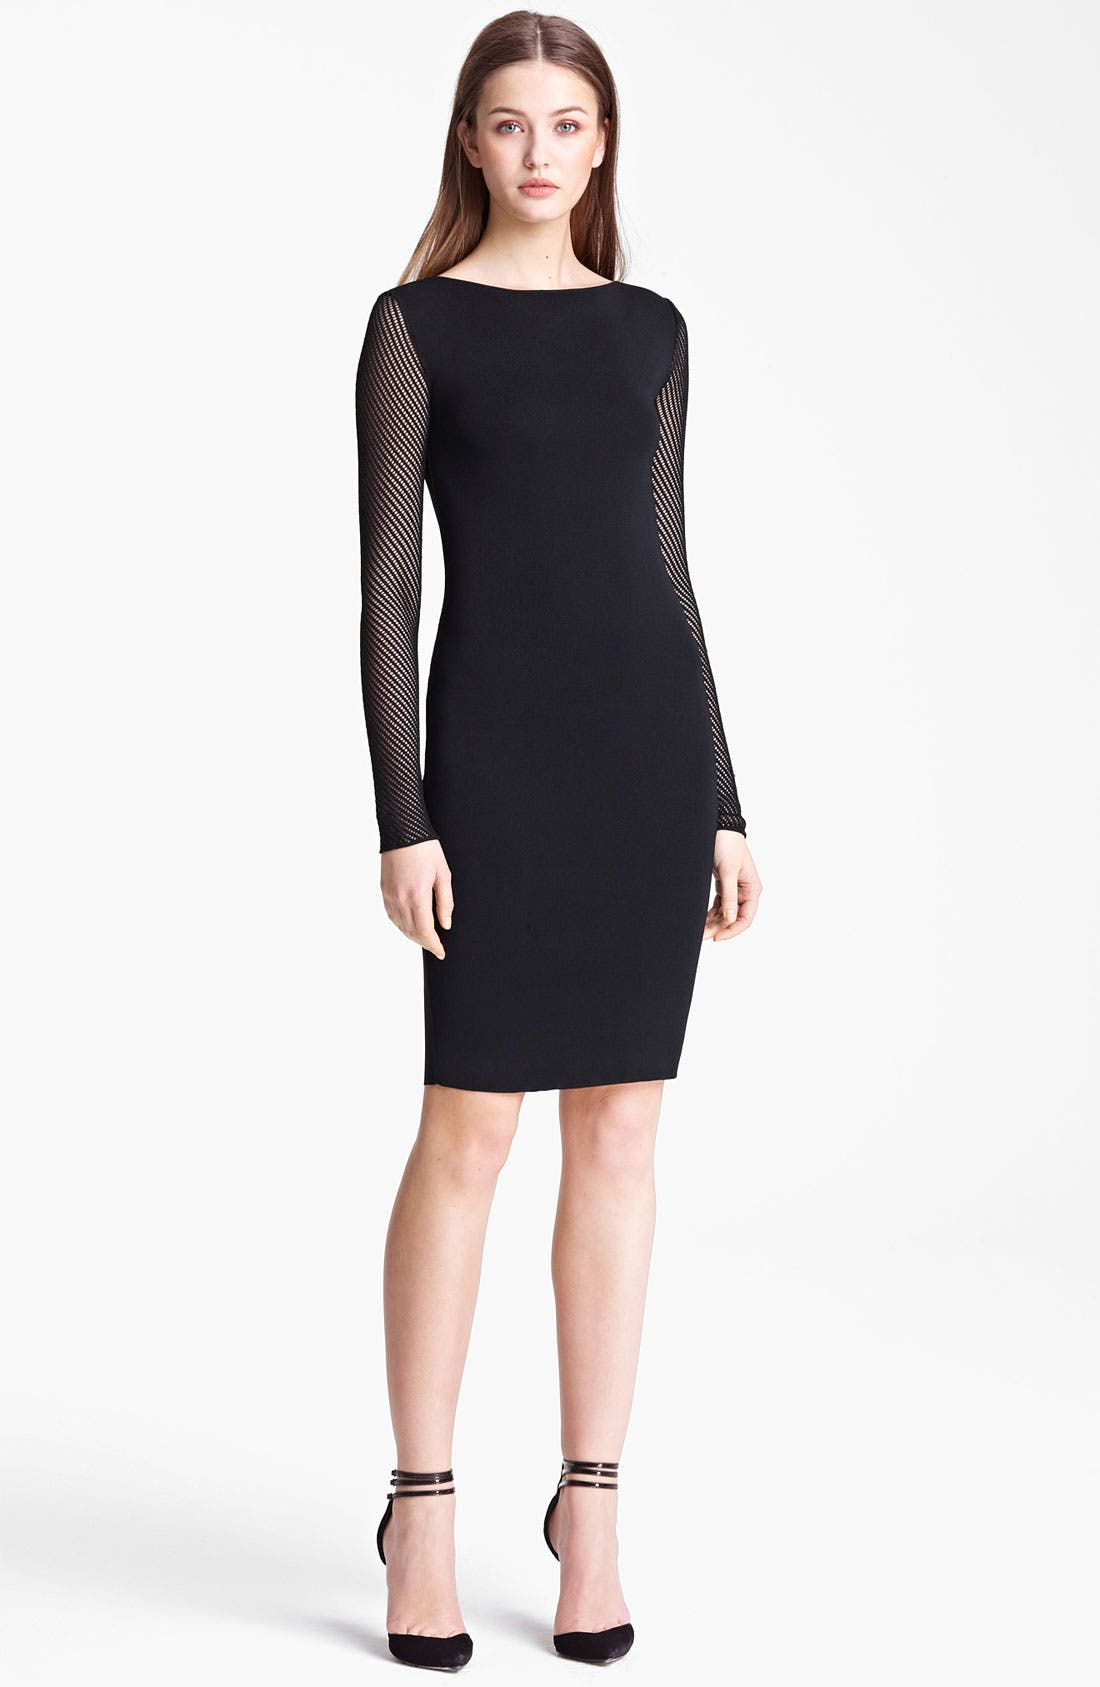 Main Image - Emilio Pucci Mesh Sleeve Dress